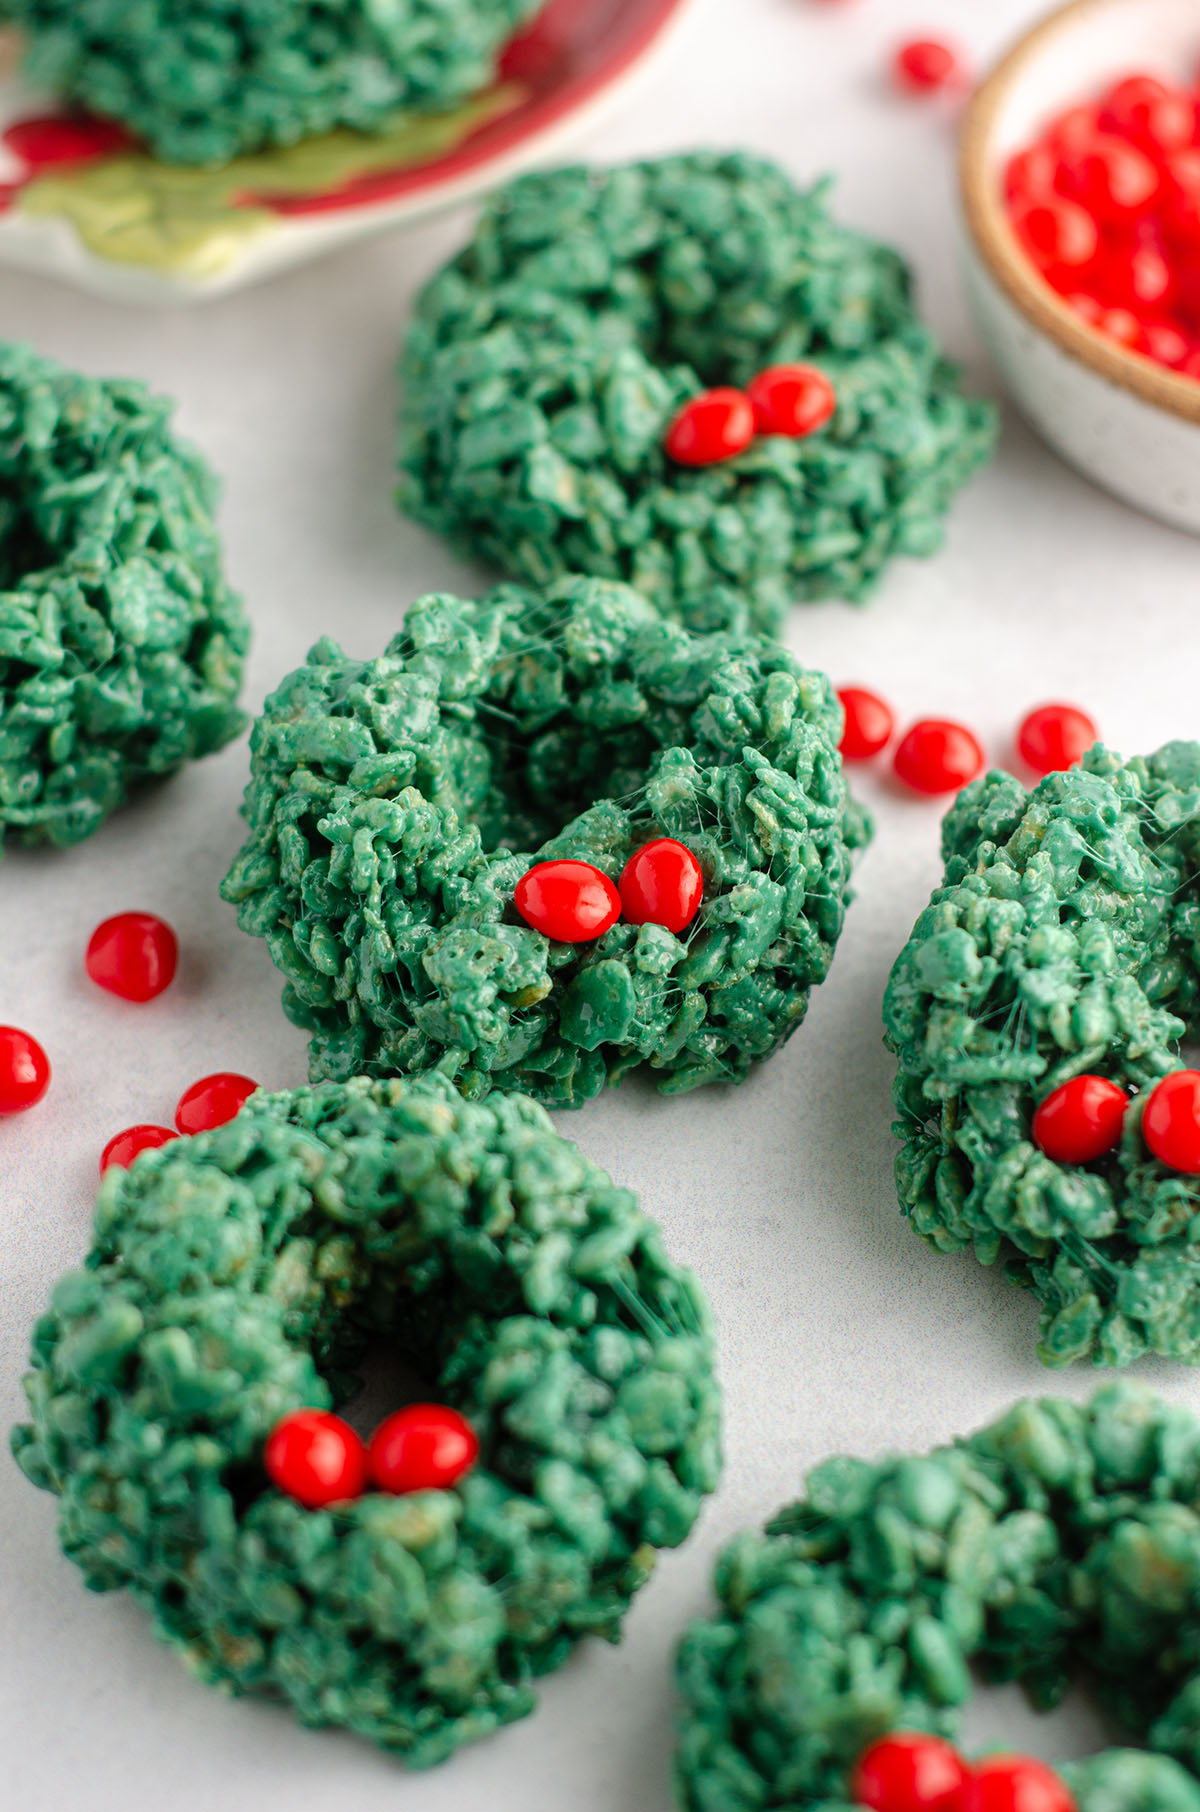 rice krispies wreaths with red candies scattered around